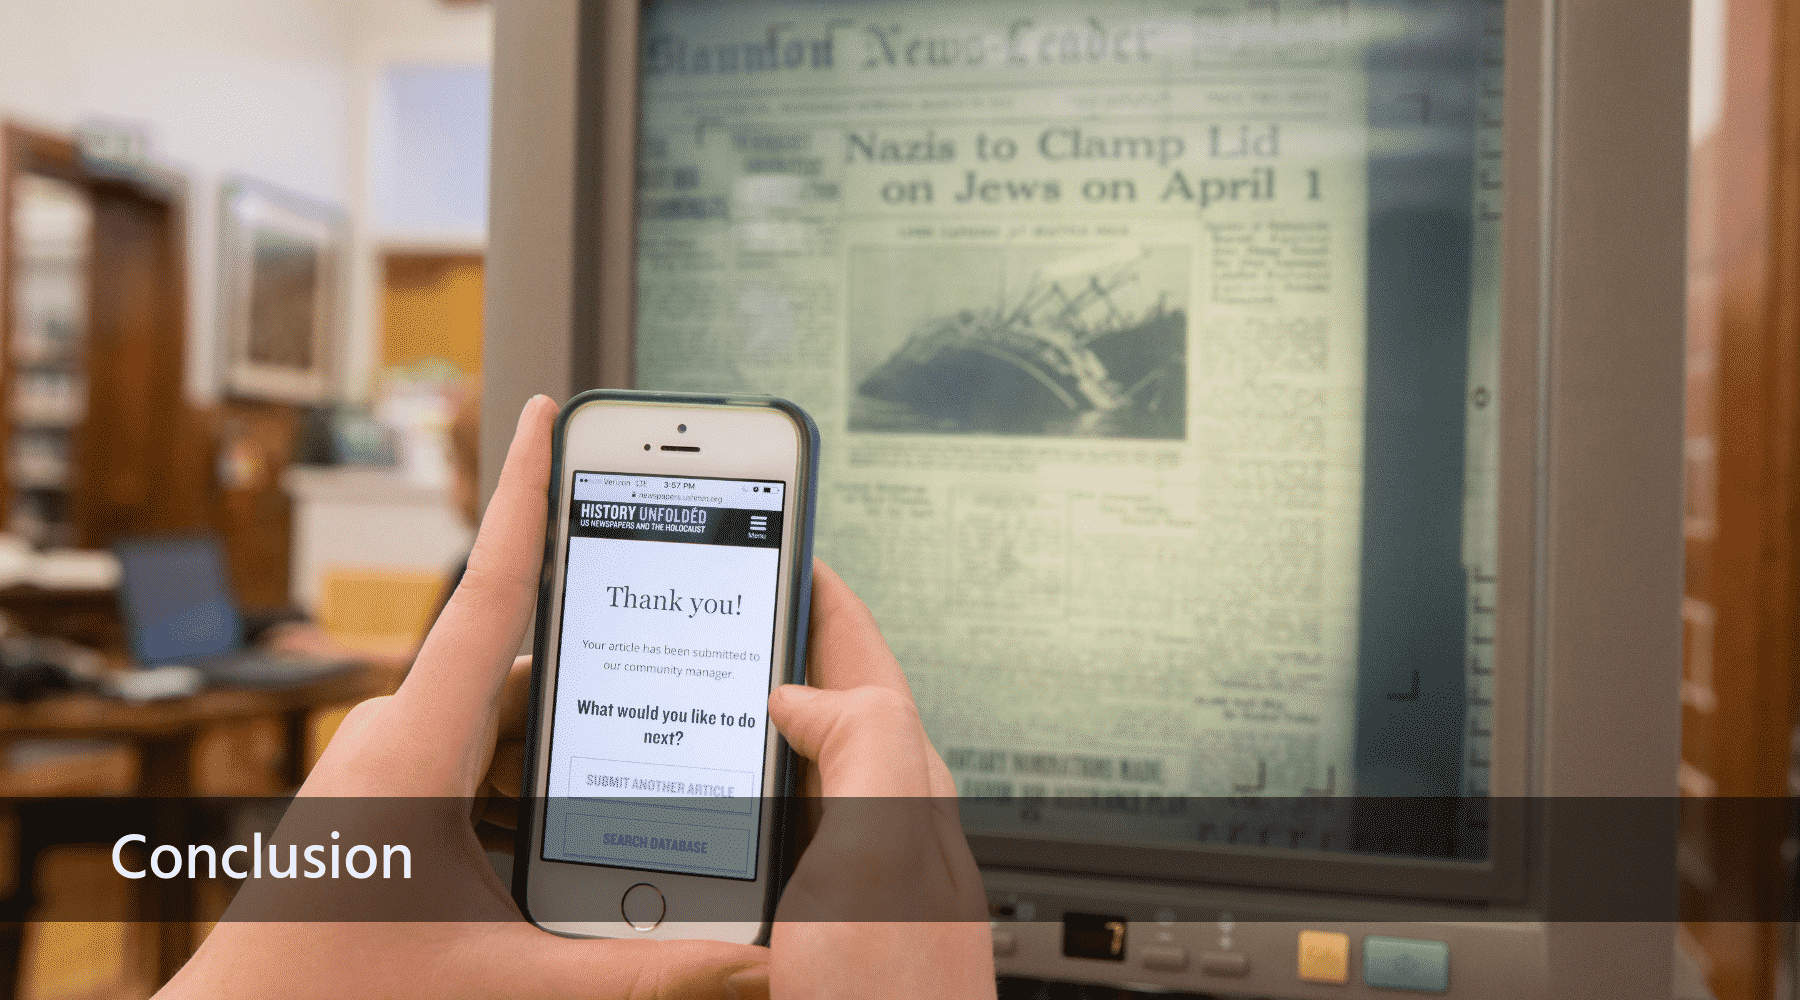 A close up image of a smart phone in front of a microfilm reader, demonstrating the app used to upload newspaper articles for the exhibition.